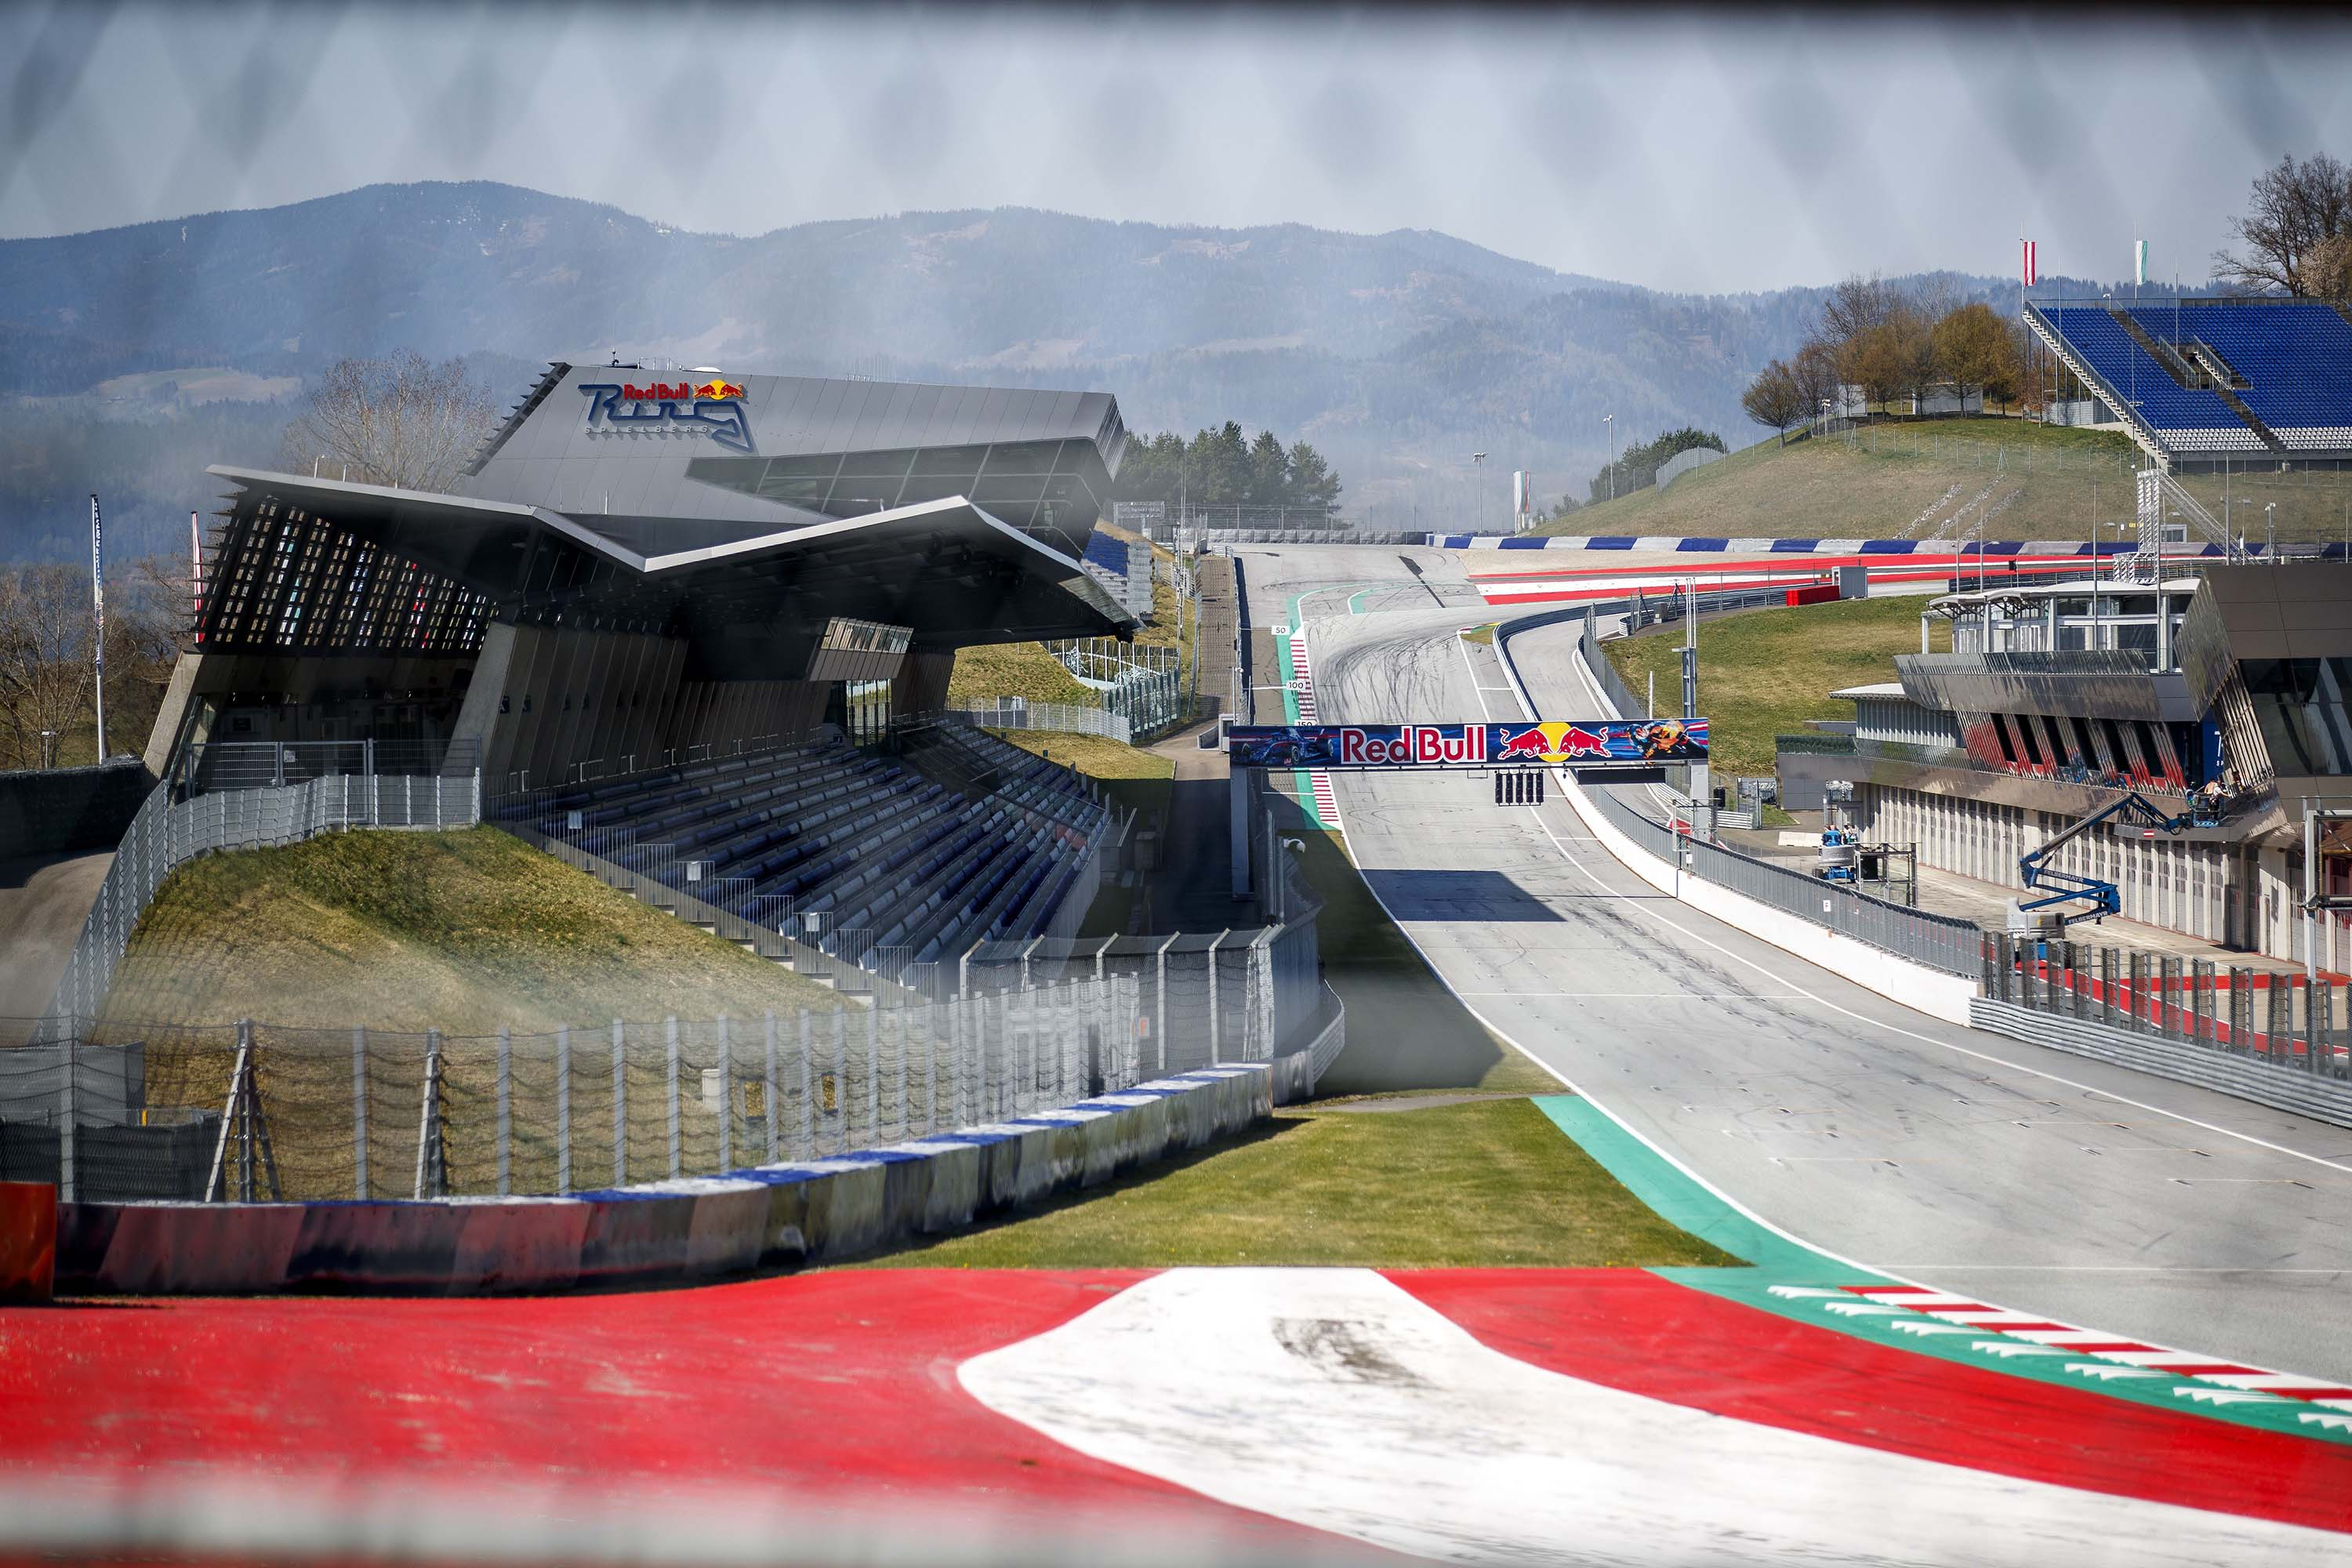 The Red Bull Ring race track is pictured in Spielberg, Austria in April.